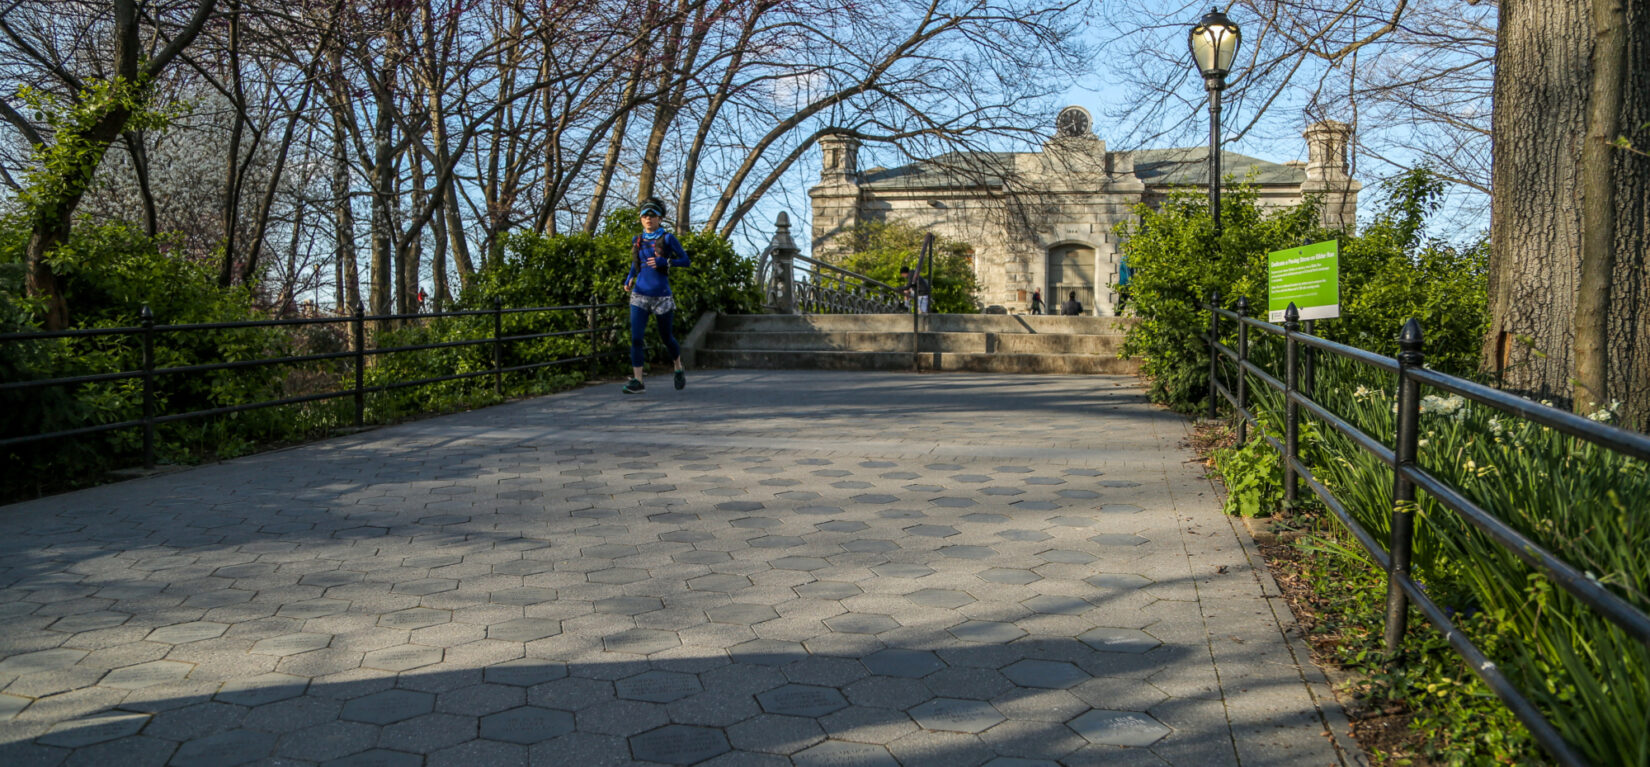 The memorial stones of Gilder Run make up this paved walkway